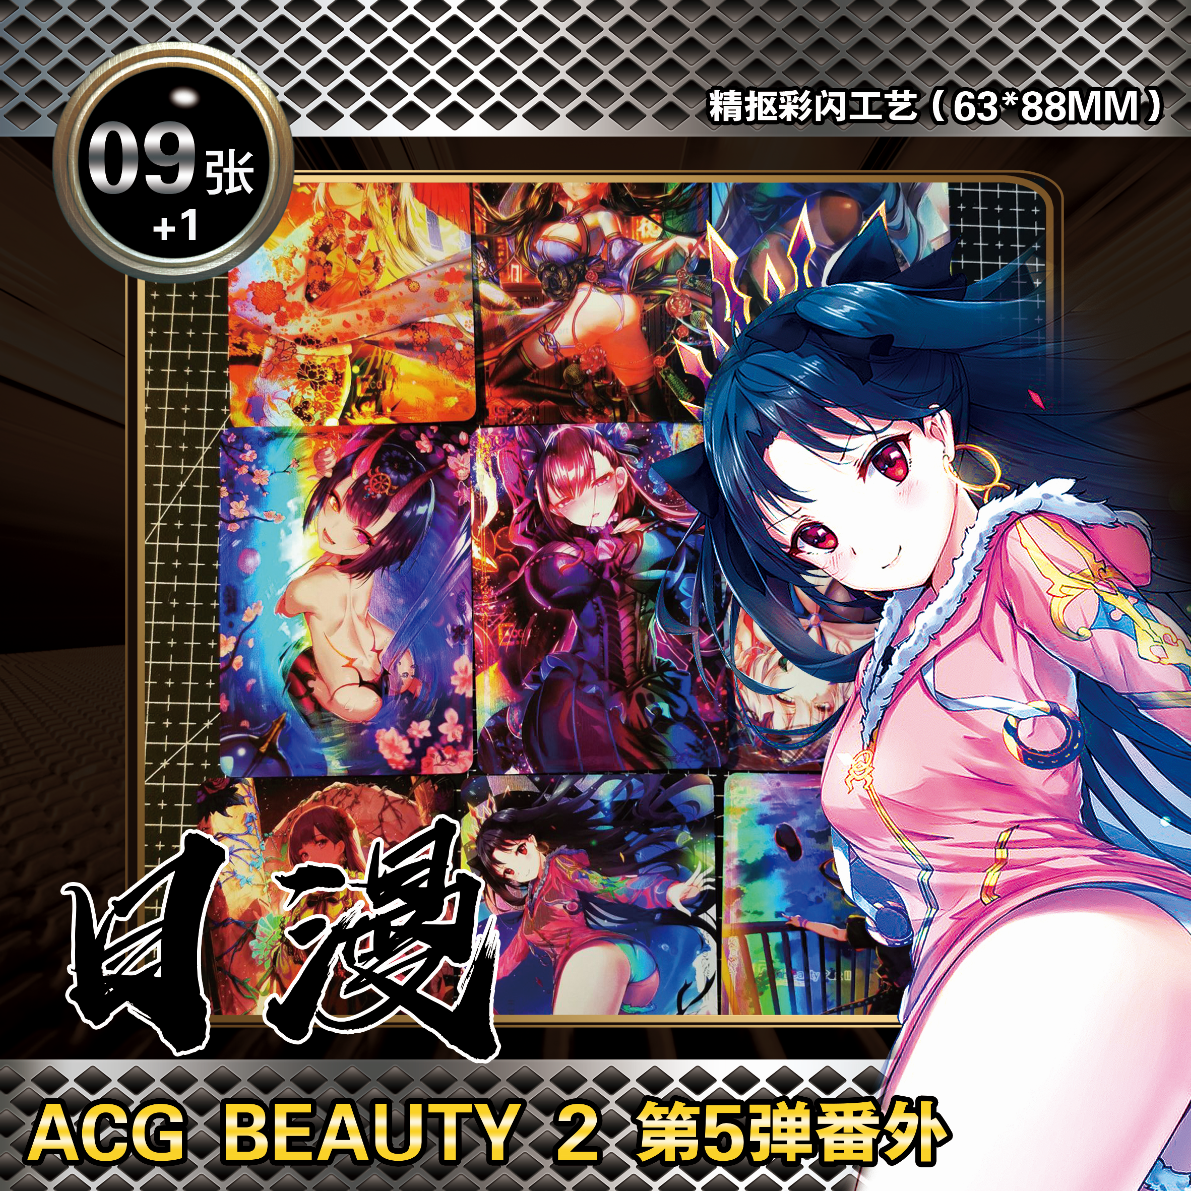 ACG BEAUTY 2 Fifth Bomb Japan Manga Heroine Series Toys Hobbies Hobby Collectibles Game Collection Anime Cards